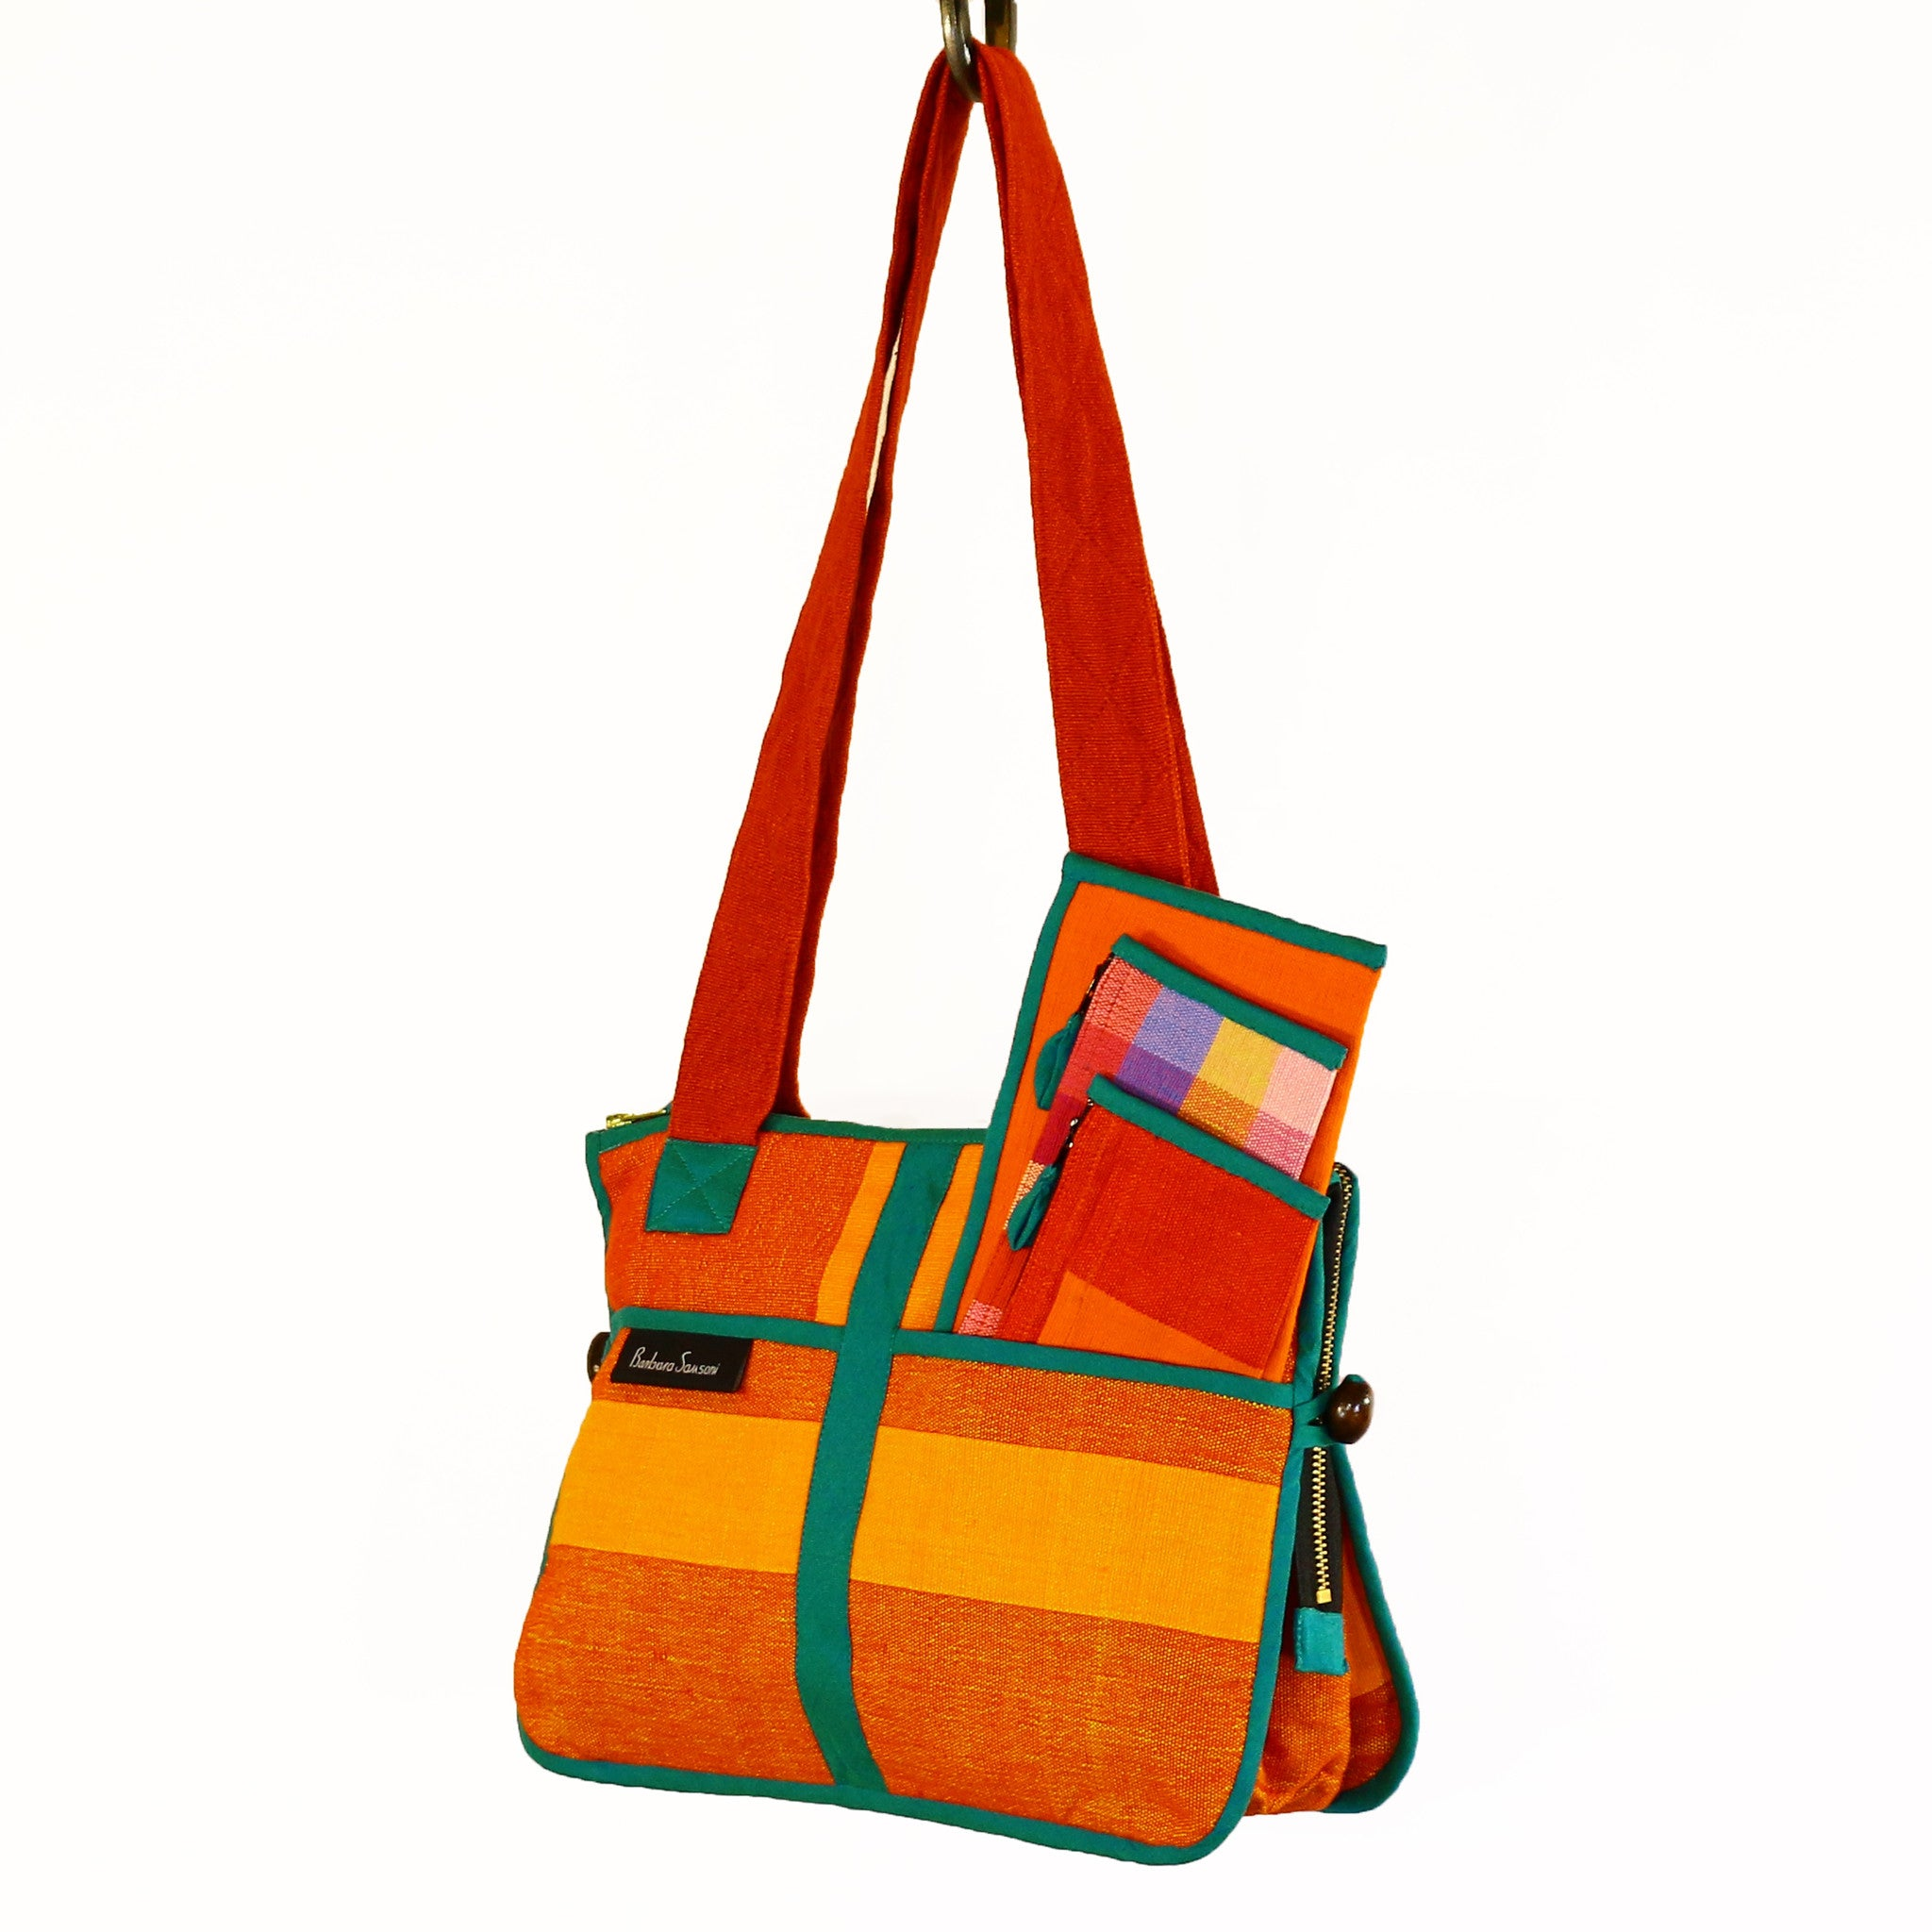 Barefoot Handwoven Expandable Shoulder Bag - Canyon fabric shown